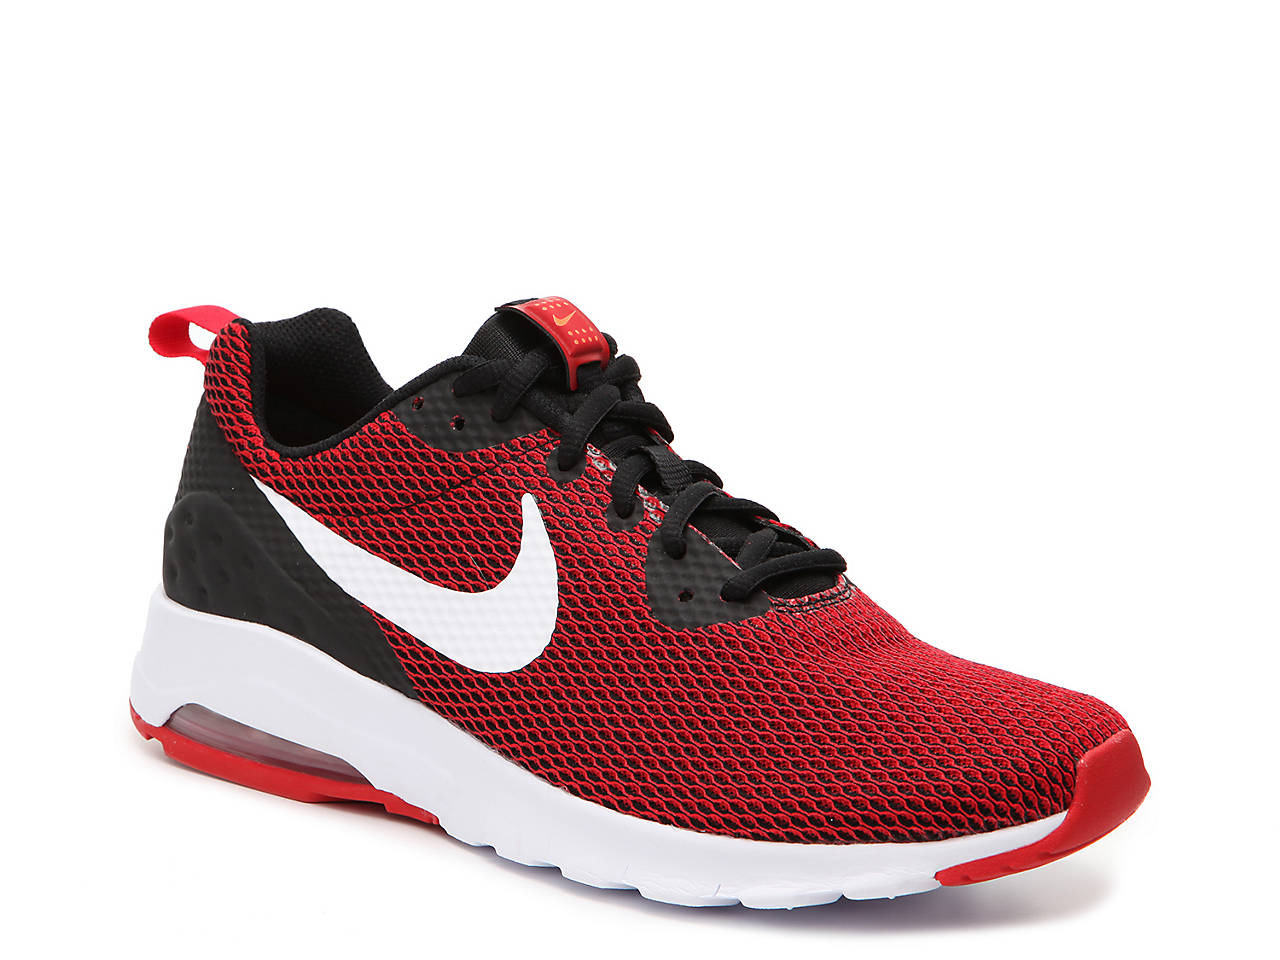 ea139697ceb629 Nike Air Max Motion LW Sneaker - Men s Men s Shoes